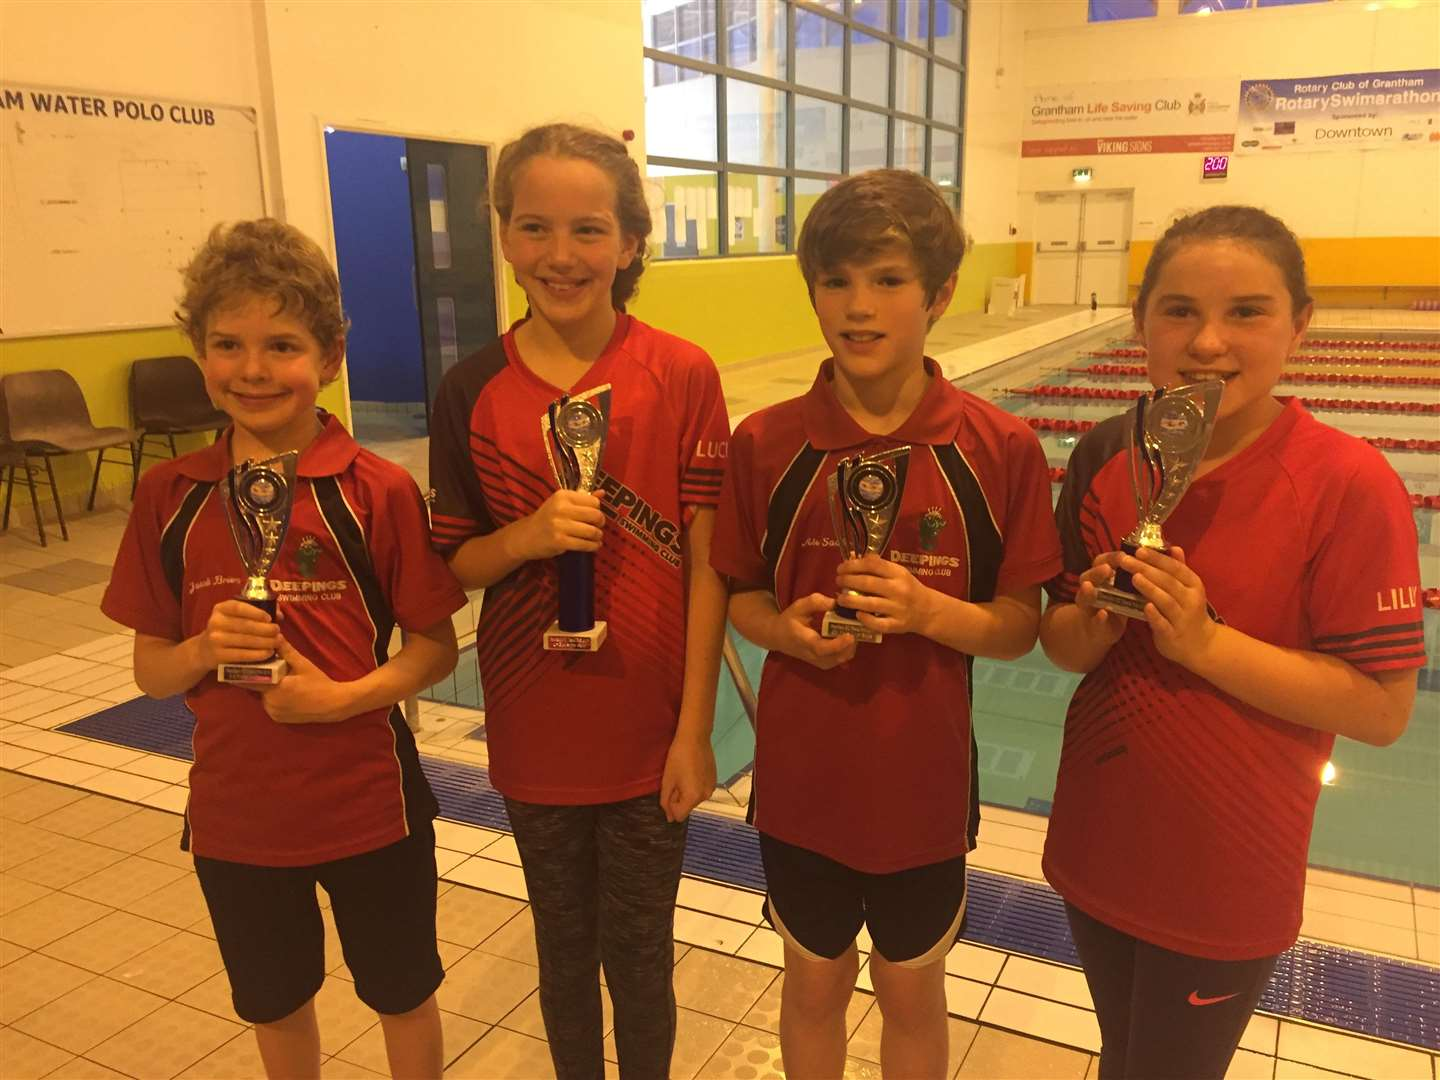 The trophy-winning Grantham Grand Prix team. From left – Jacob Briers, Lucia Karic, Alex Sadler and Lilly Tappern (missing Grace Edwards).